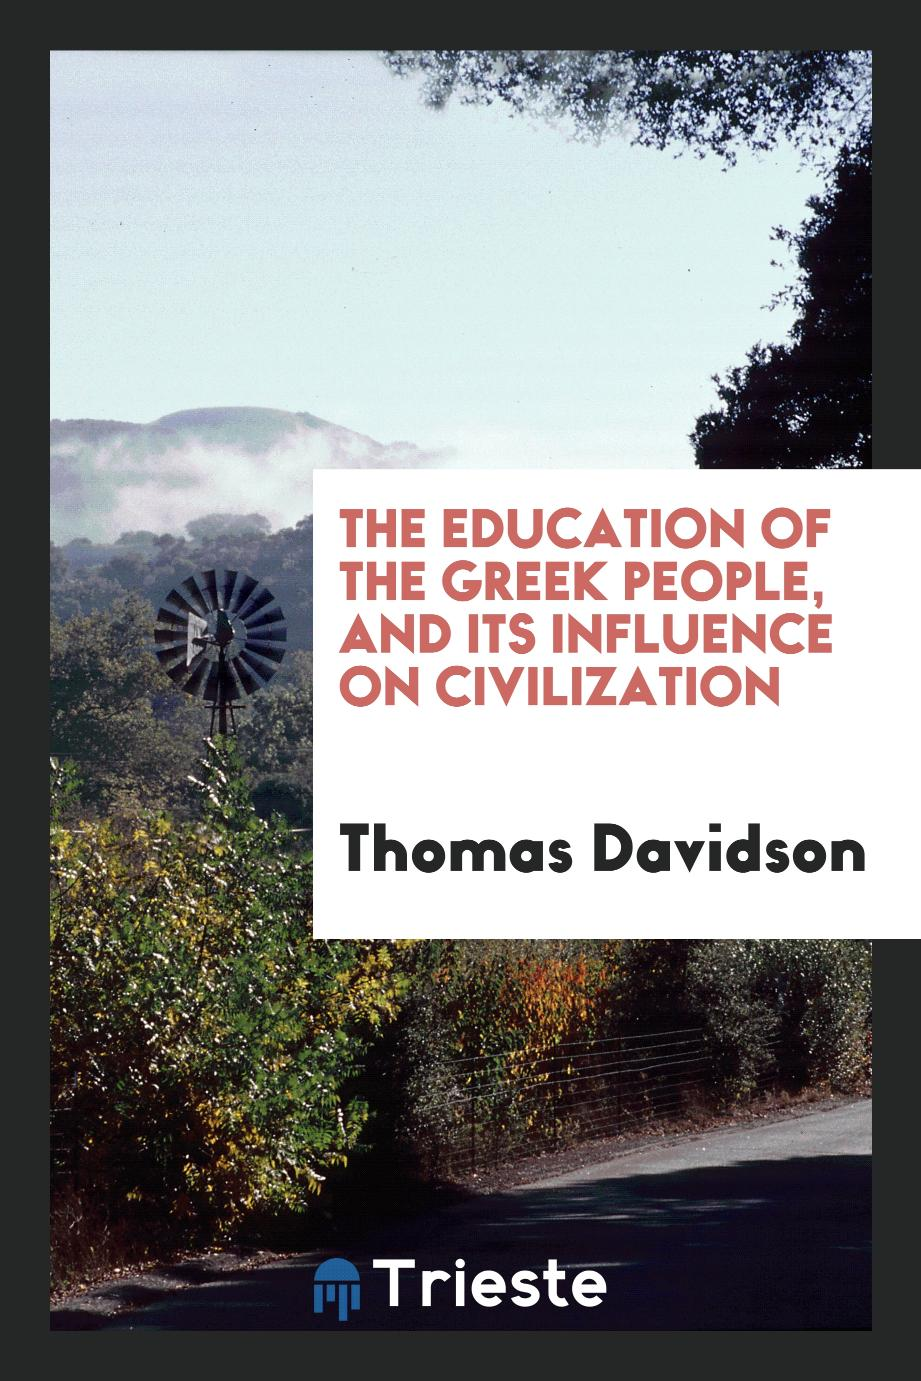 The education of the Greek people, and its influence on civilization